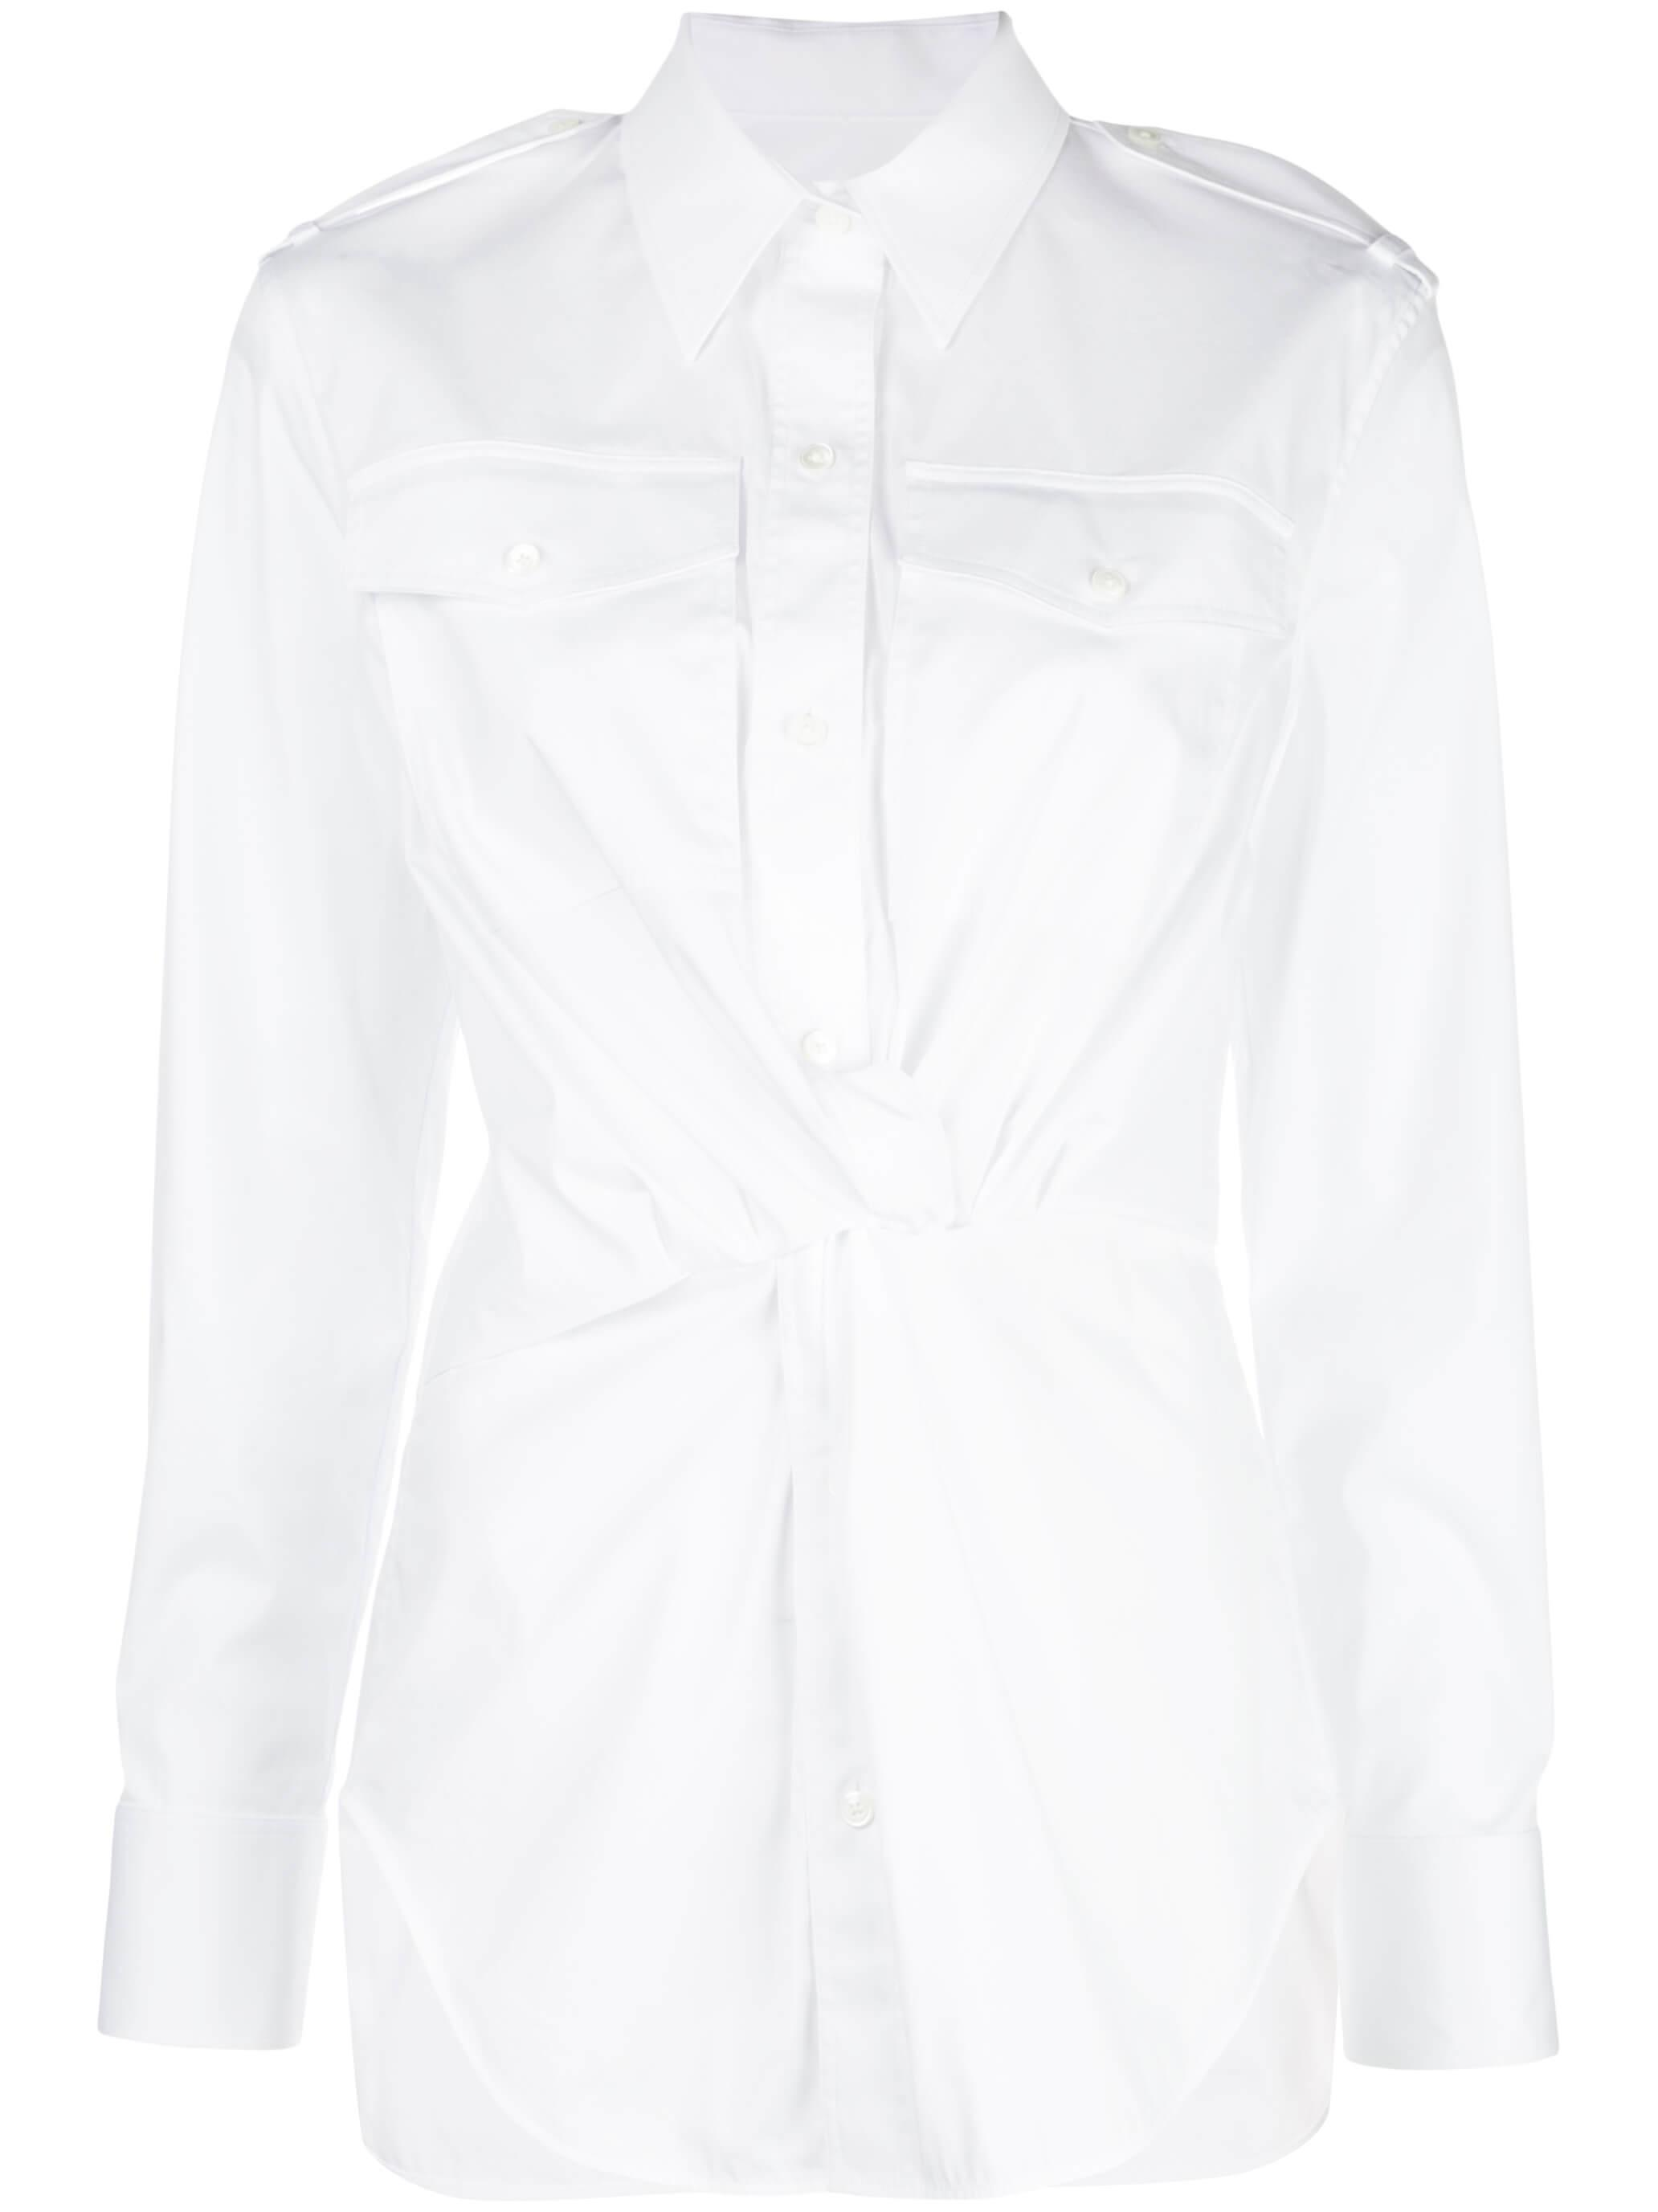 Compact Cotton Poplin Knot Shirt